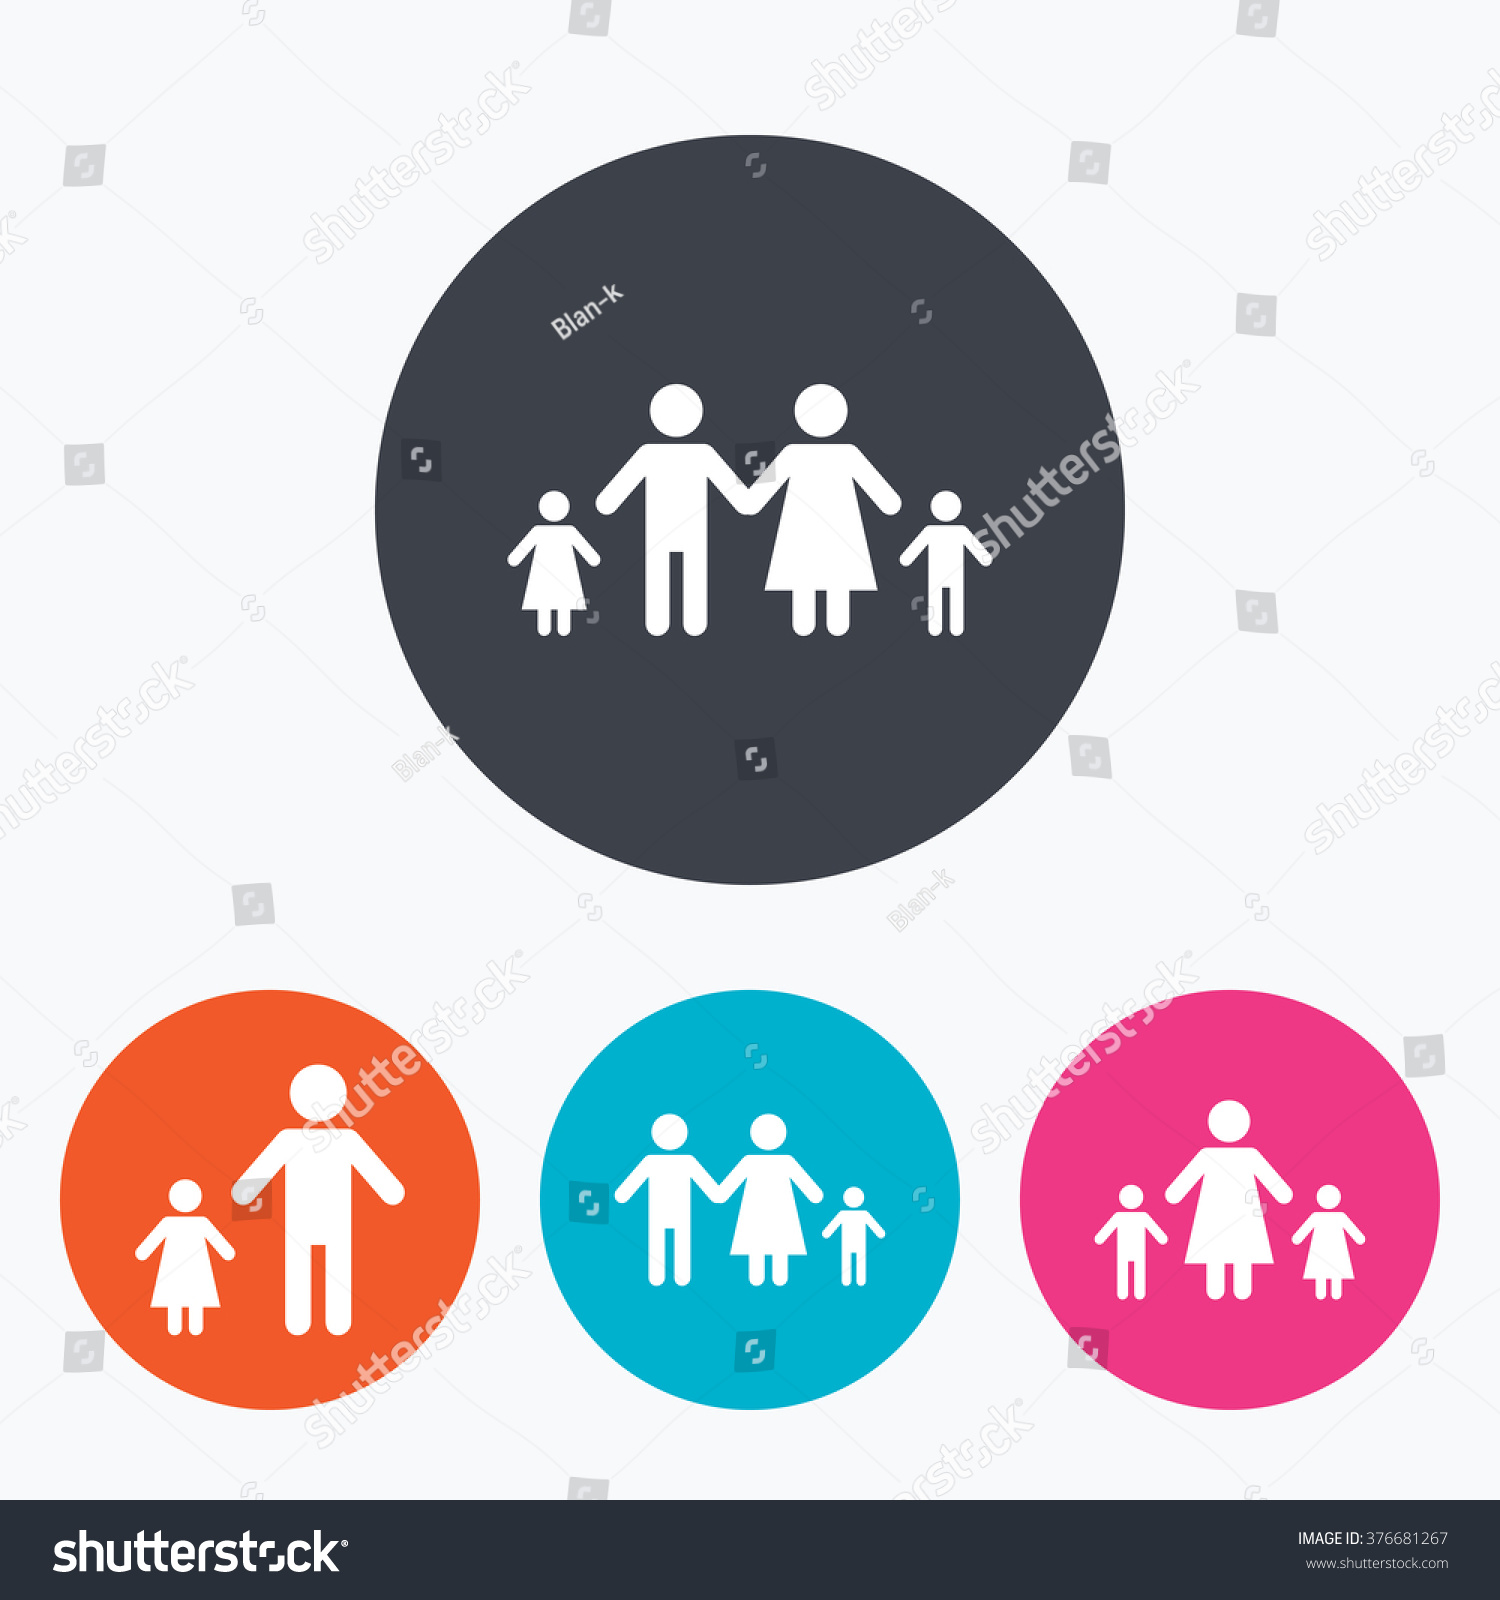 Family two children icon parents kids stock illustration 376681267 family with two children icon parents and kids symbols one parent family signs buycottarizona